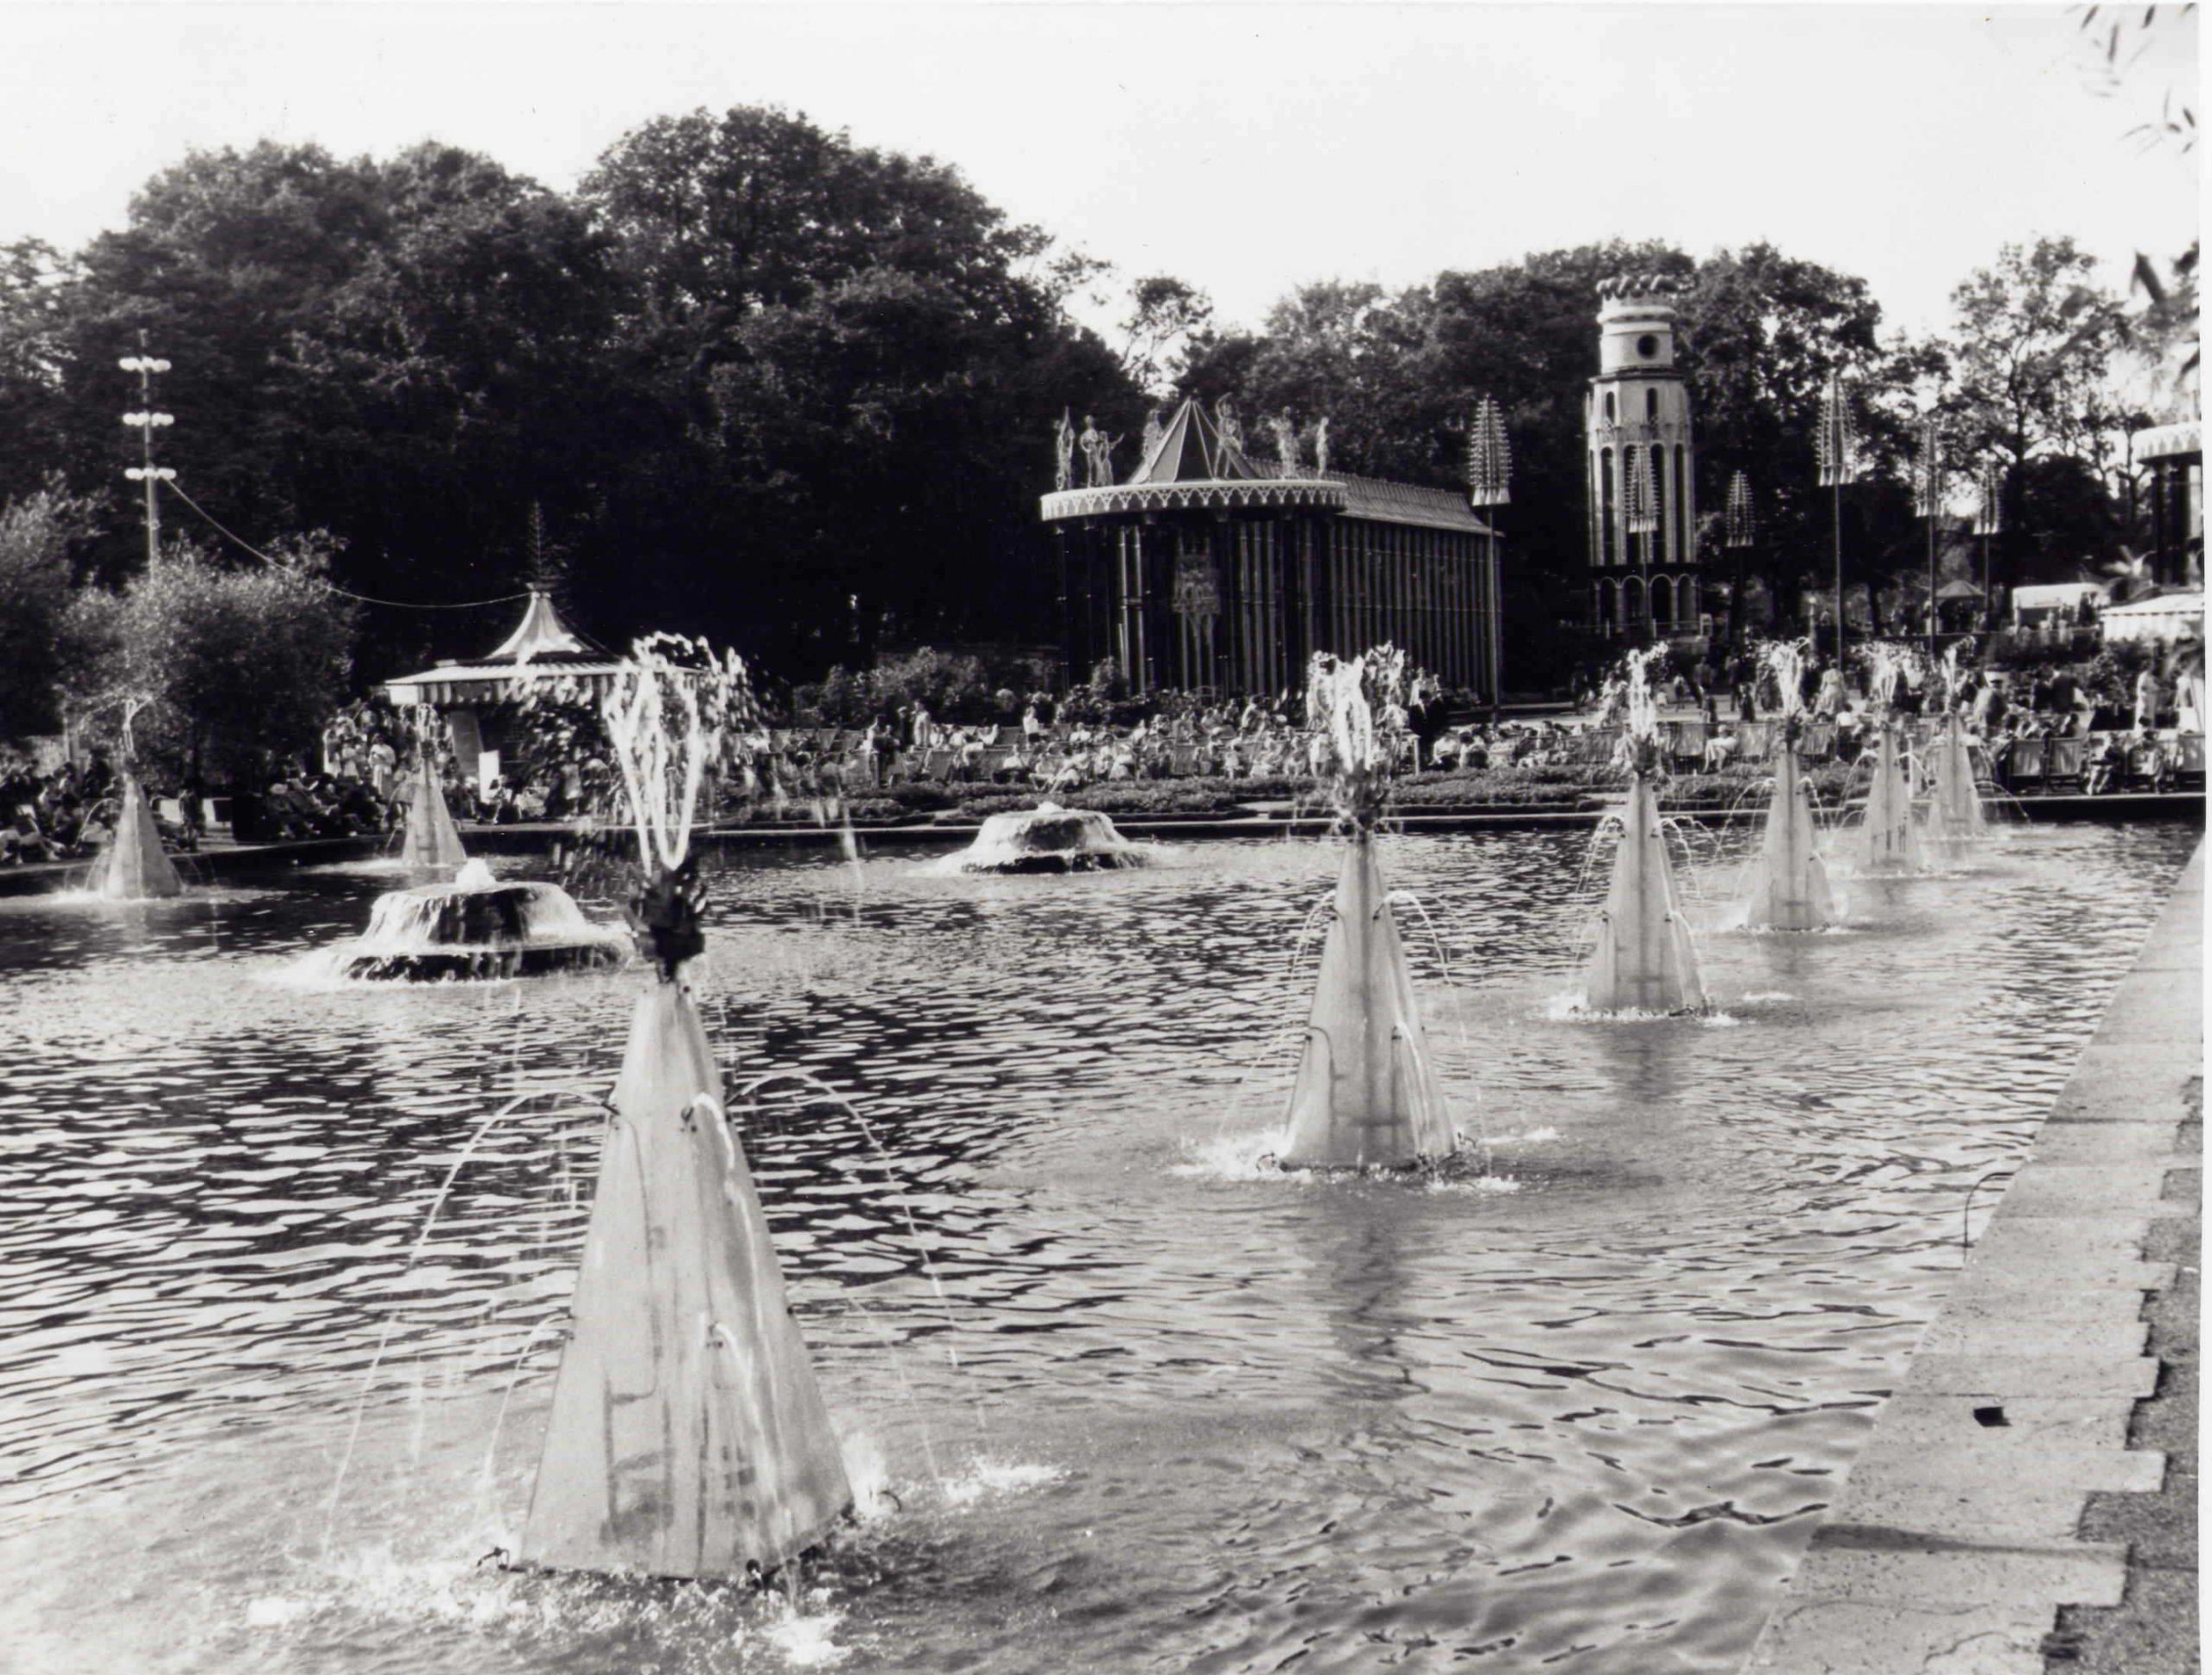 Black and white image of Battersea Park Fountains